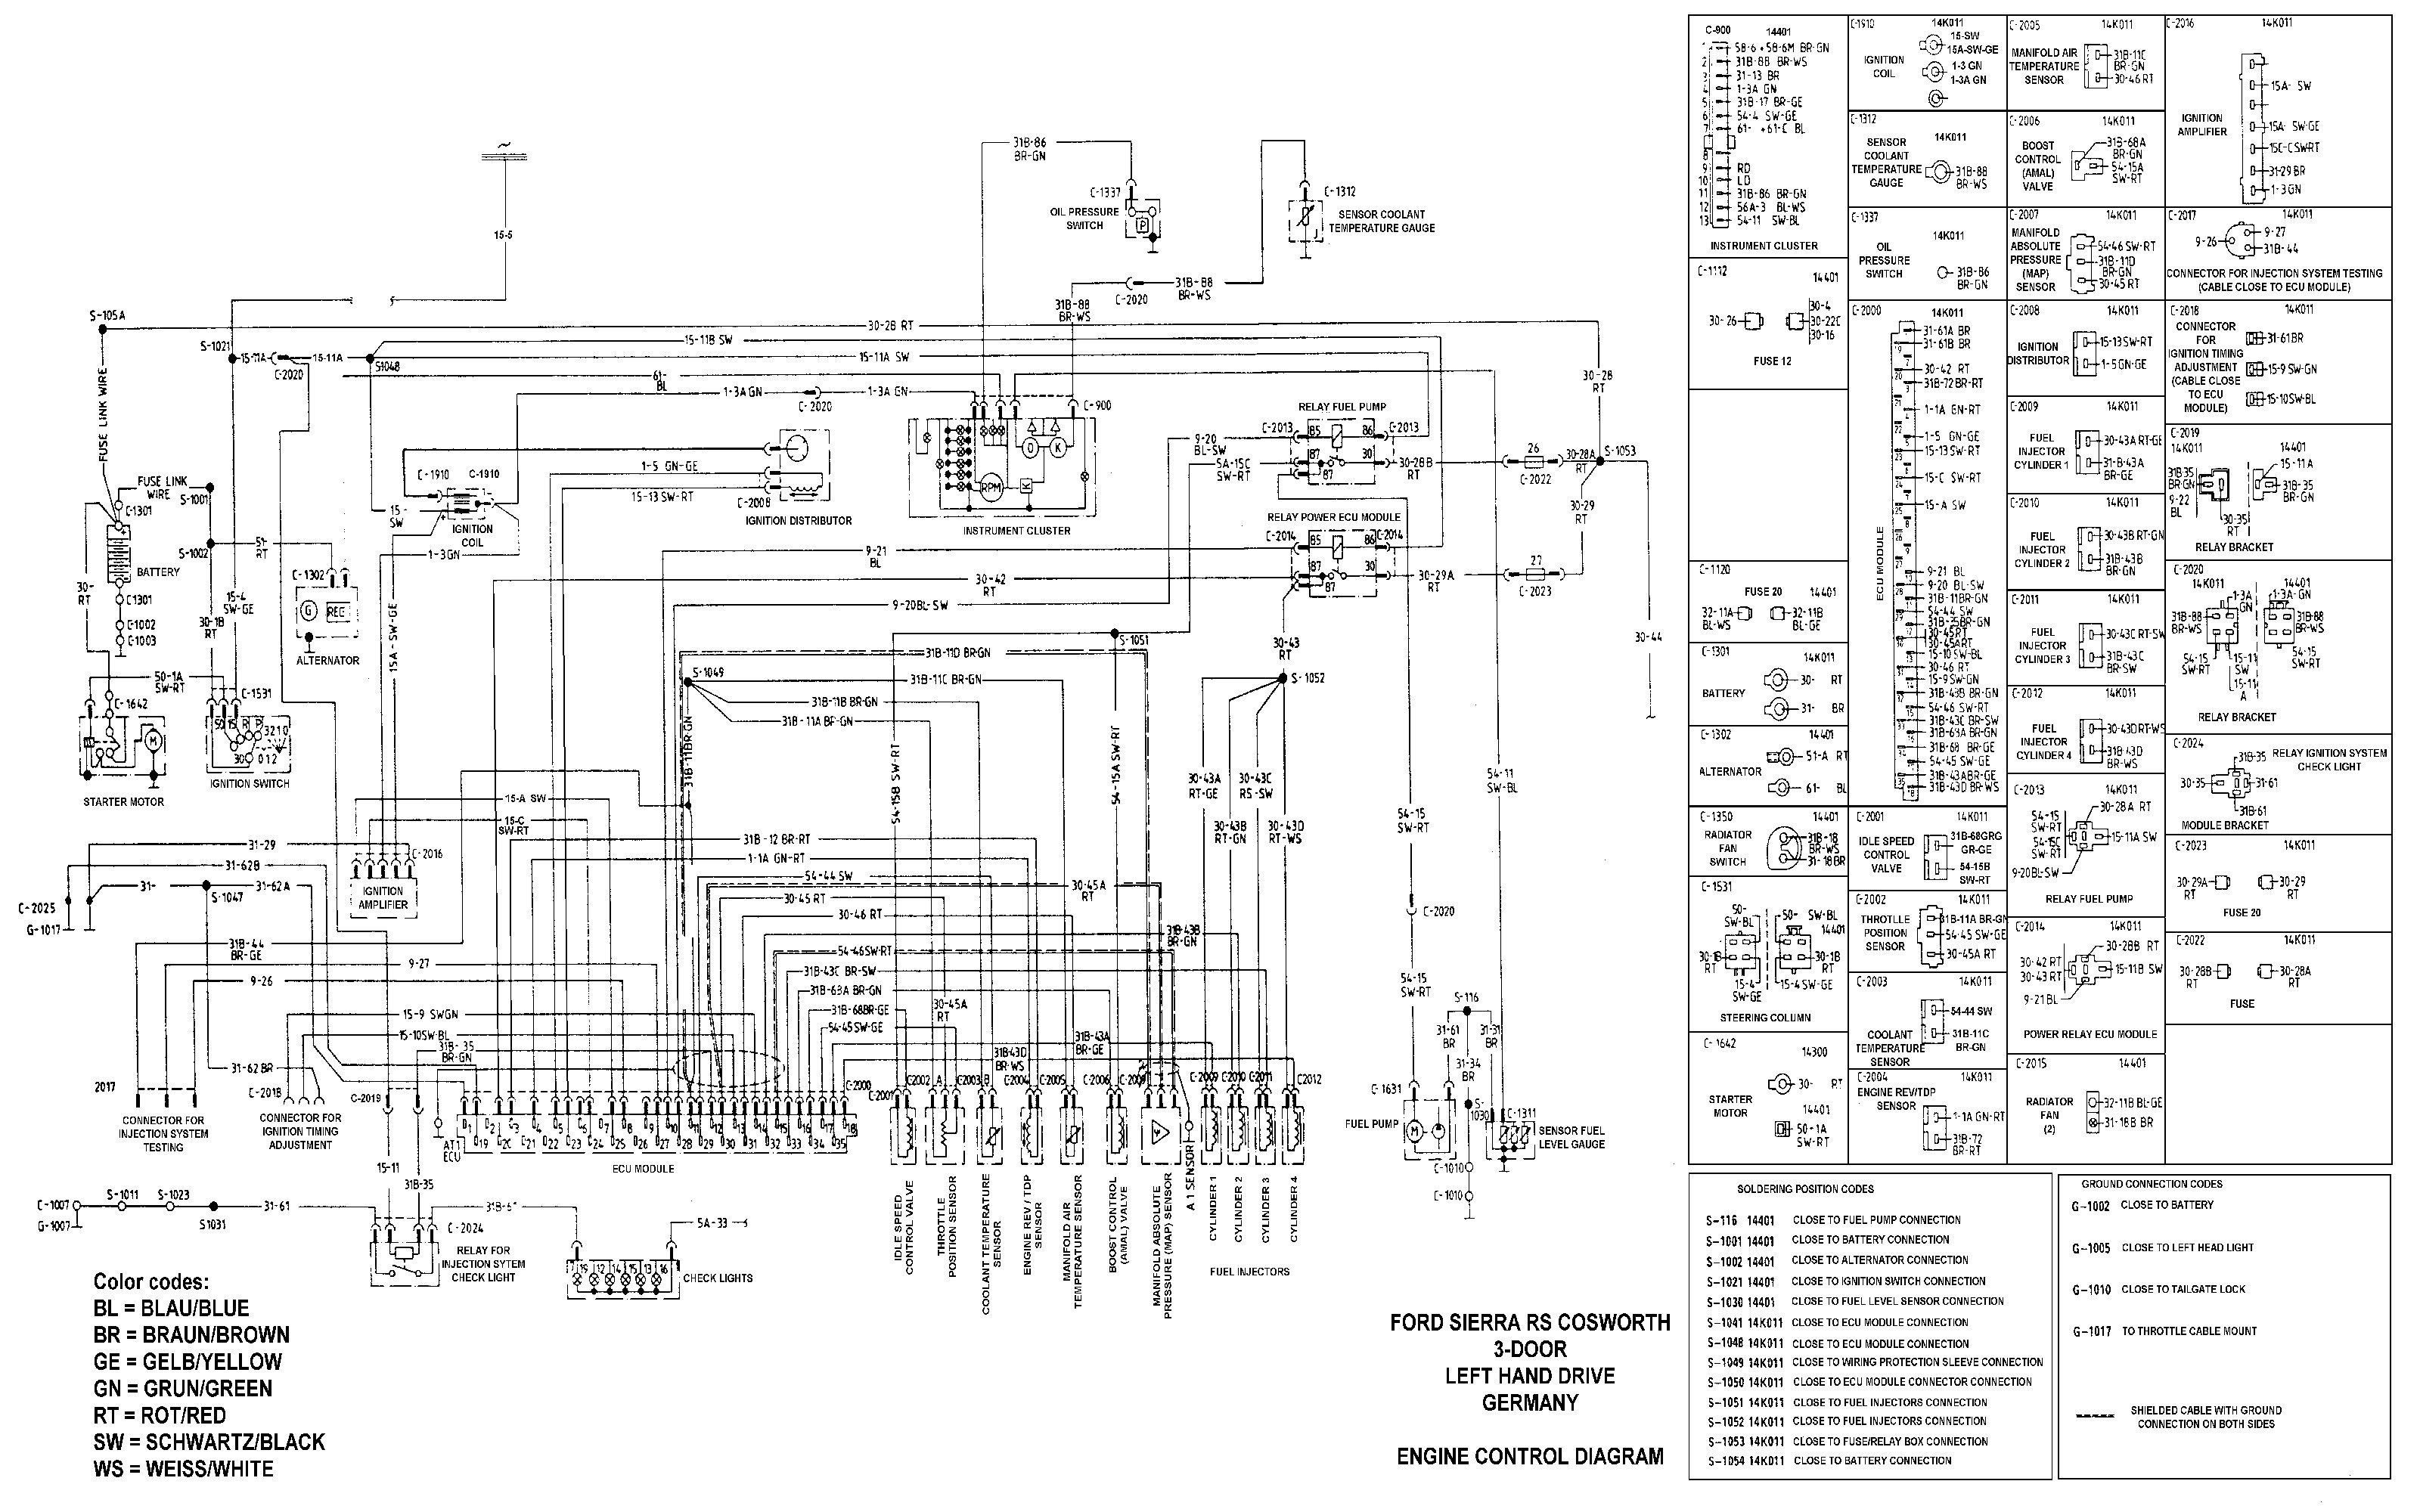 Unique Car Stereo Radio Wiring Diagram Diagram Car Stereo Car Stereo Installation